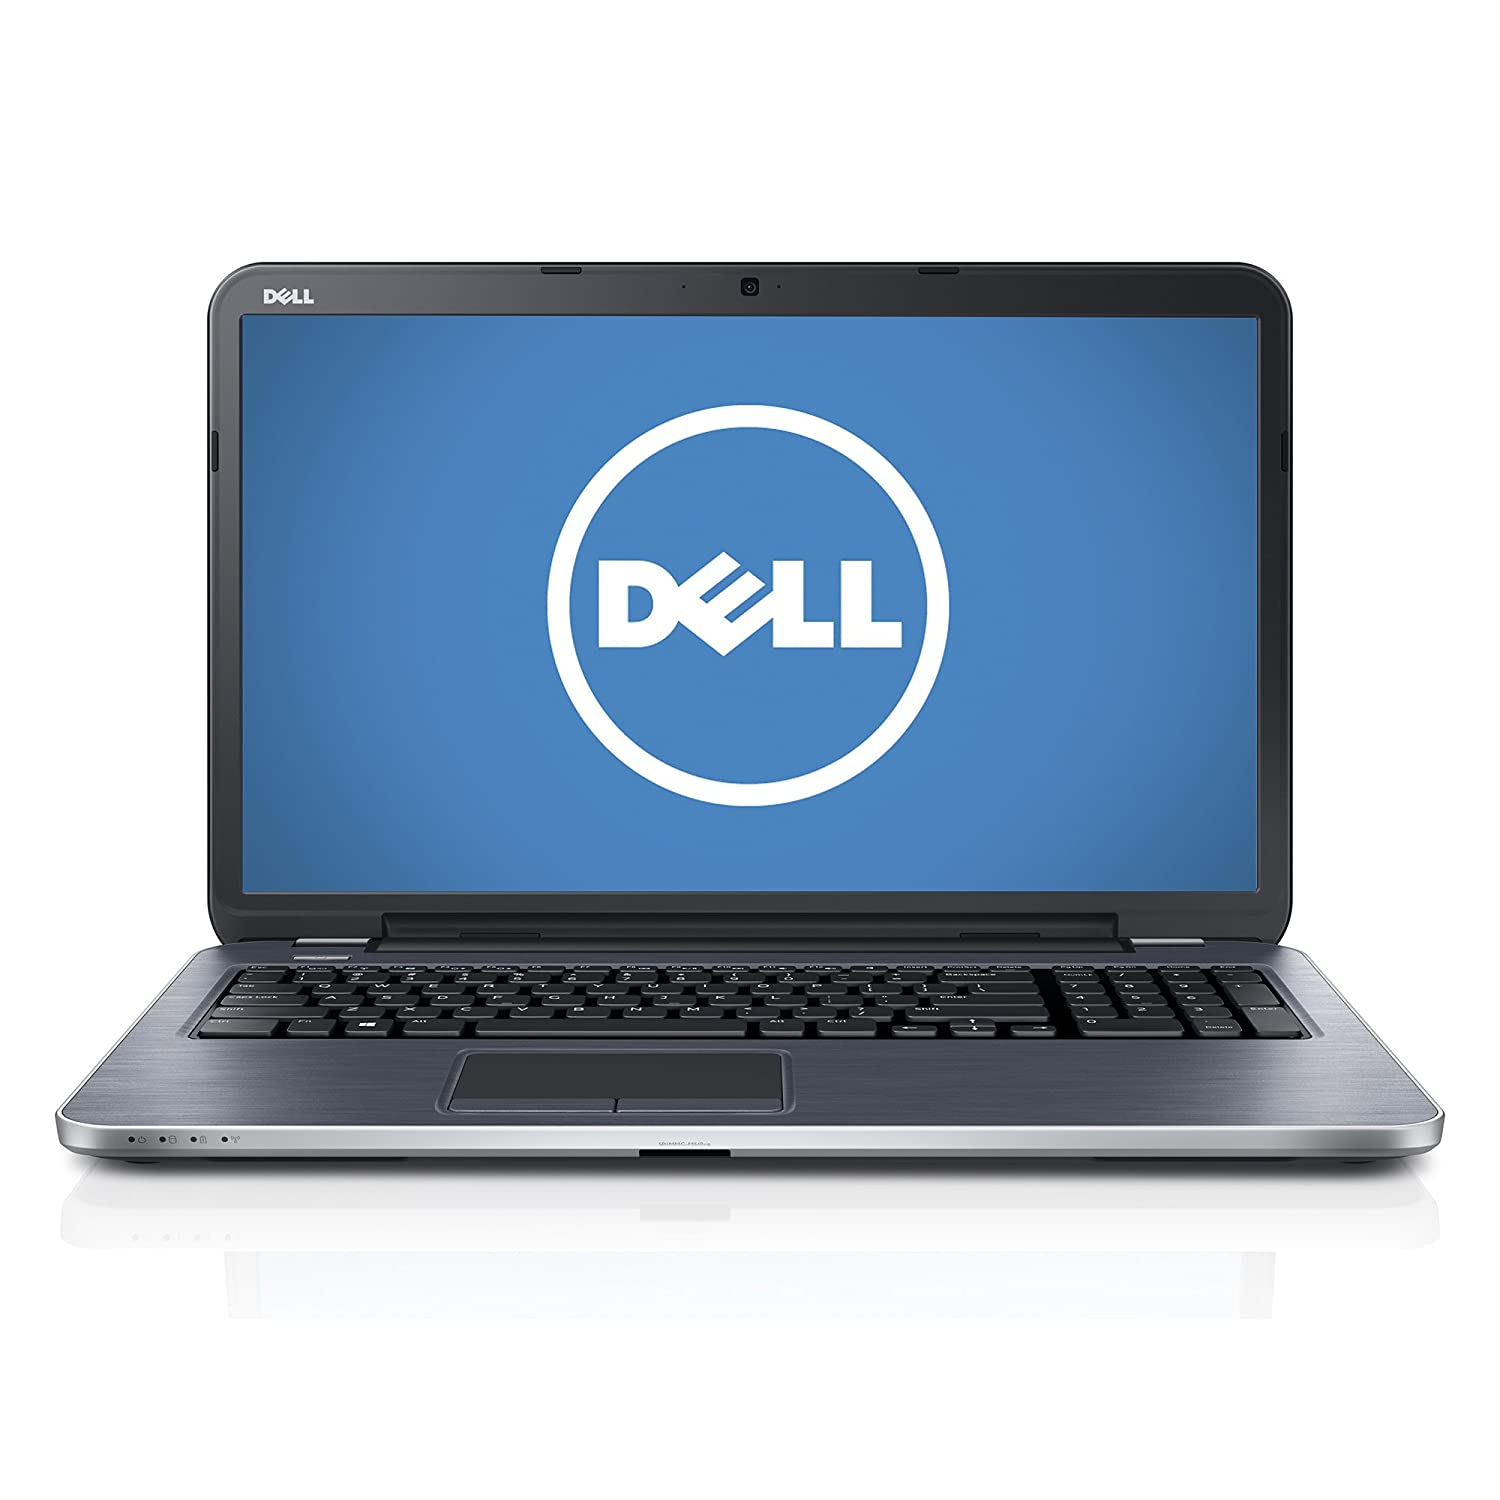 Dell Inspiron 17R i17RM-5162sLV 17.3-Inch Laptop